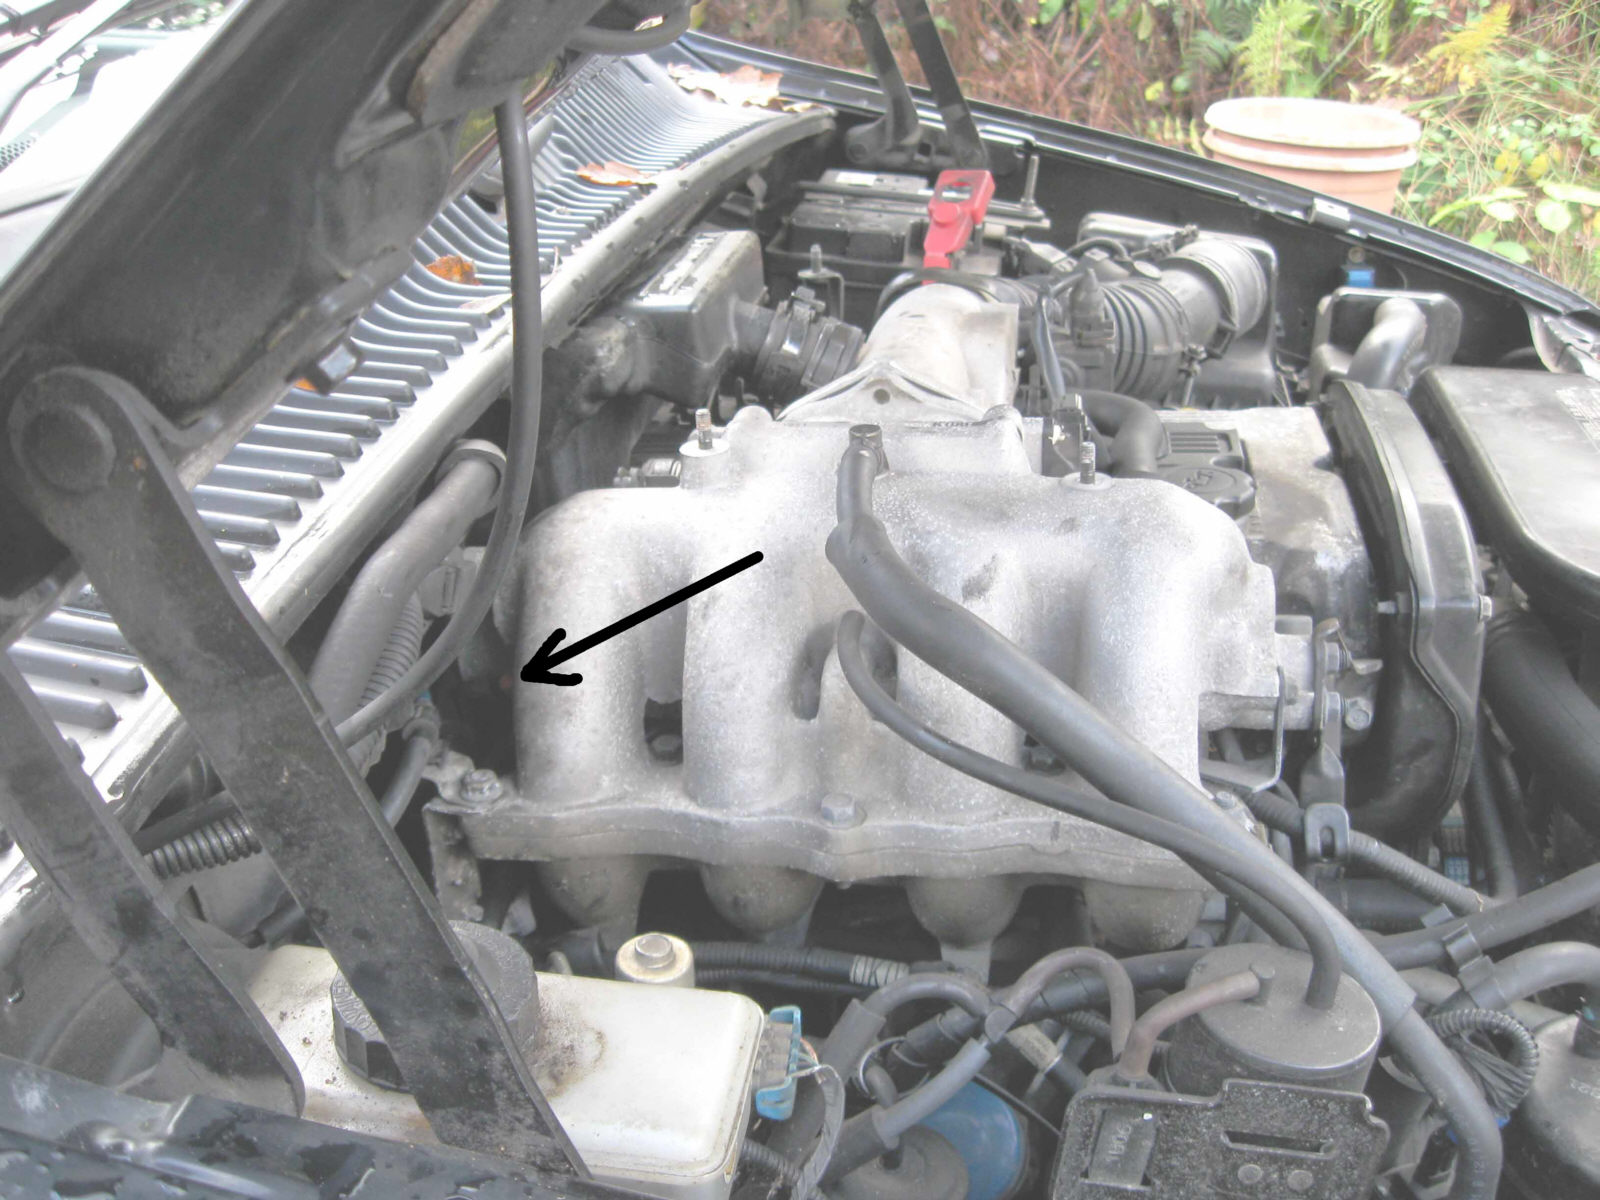 hight resolution of 2002 kia spectra engine diagram wiring diagram 2007 kia sportage engine diagram index listing of wiring